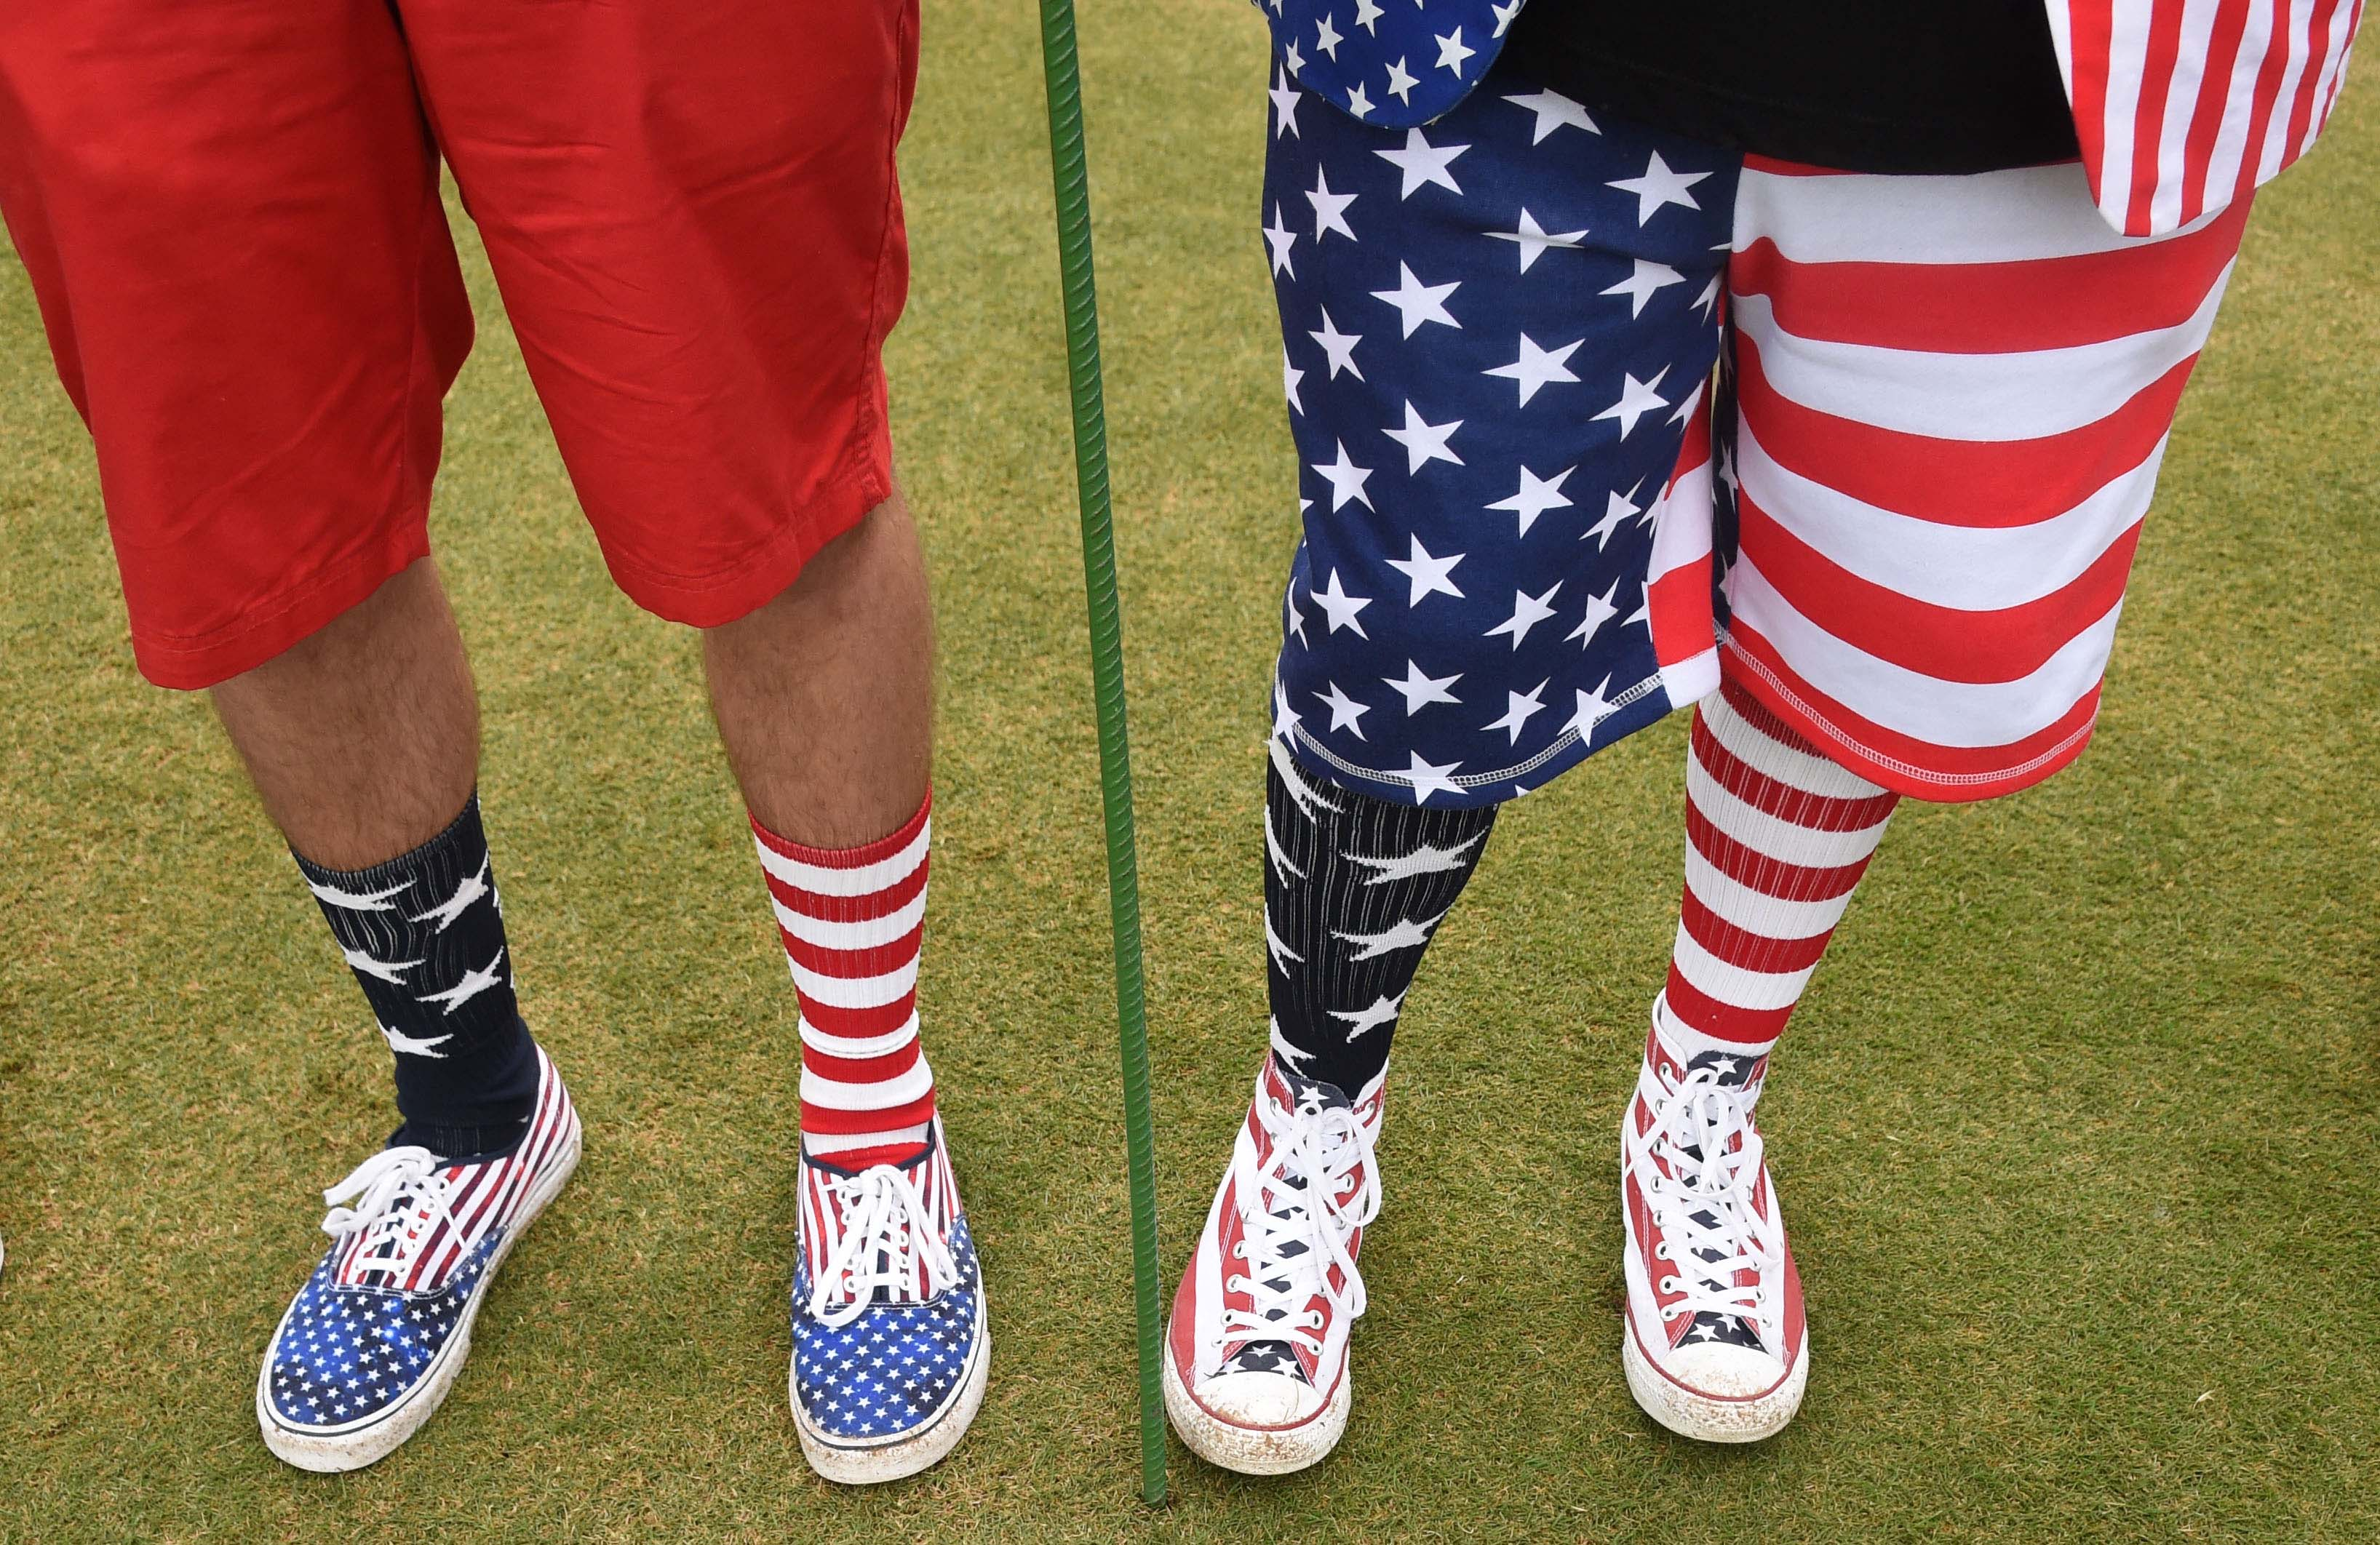 What the well dressed U.S. Olympic fan is wearing